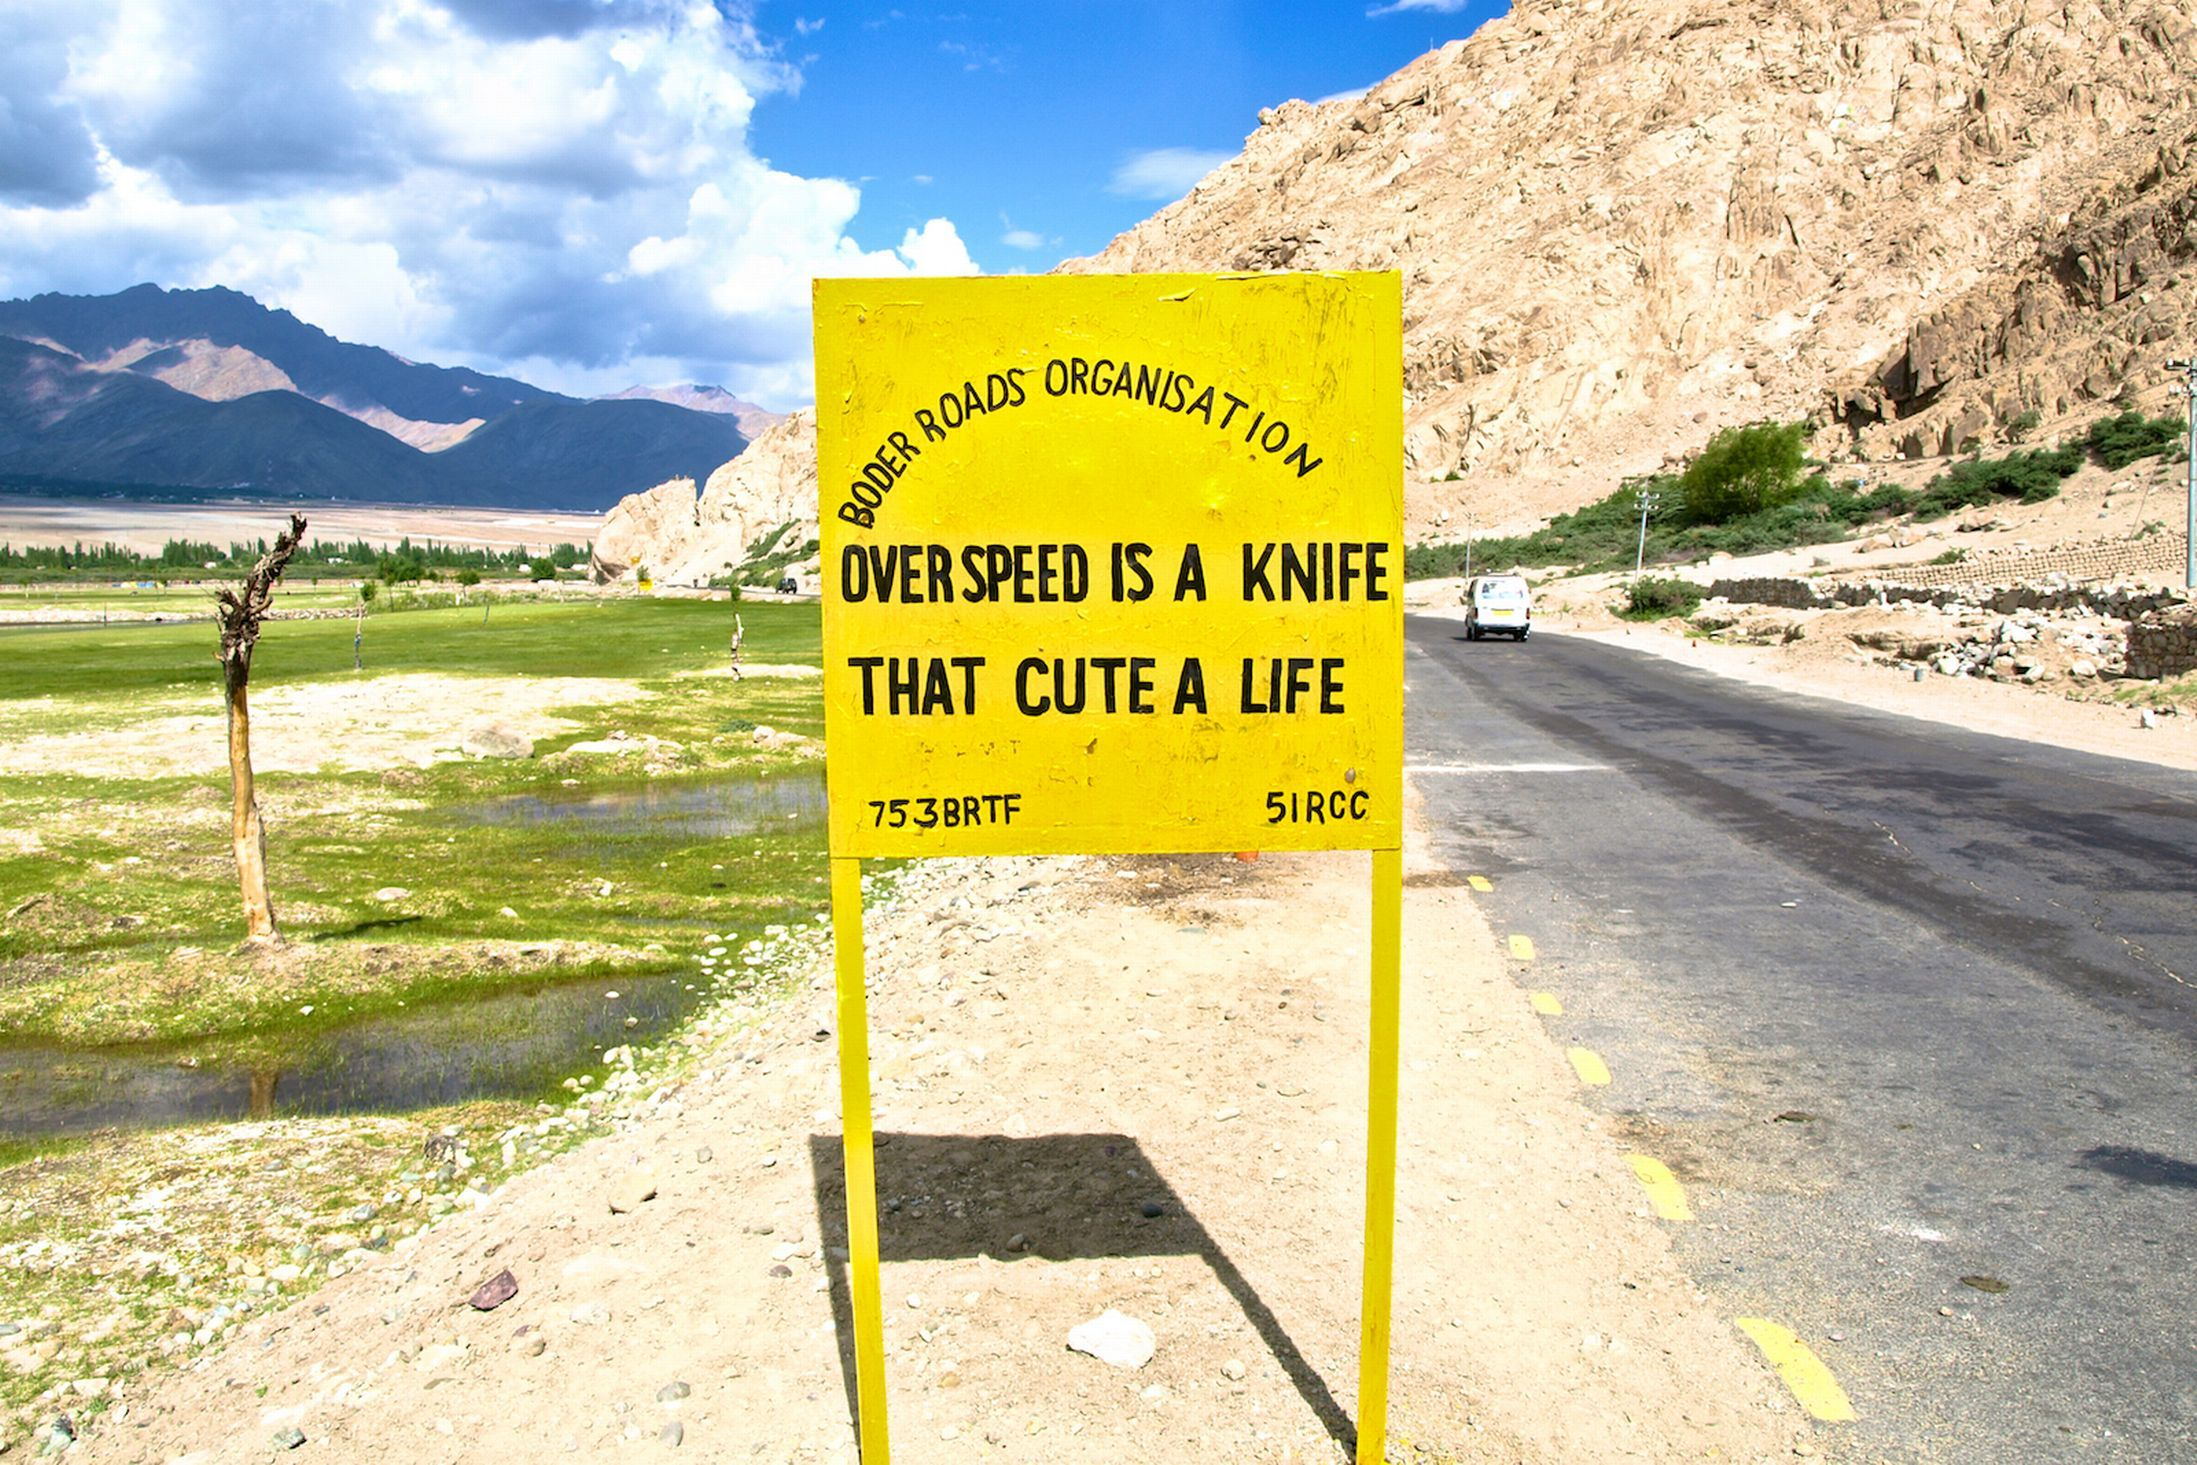 In pictures funny road signs greet drivers in the mountainous in pictures funny road signs greet drivers in the mountainous regions of india m4hsunfo